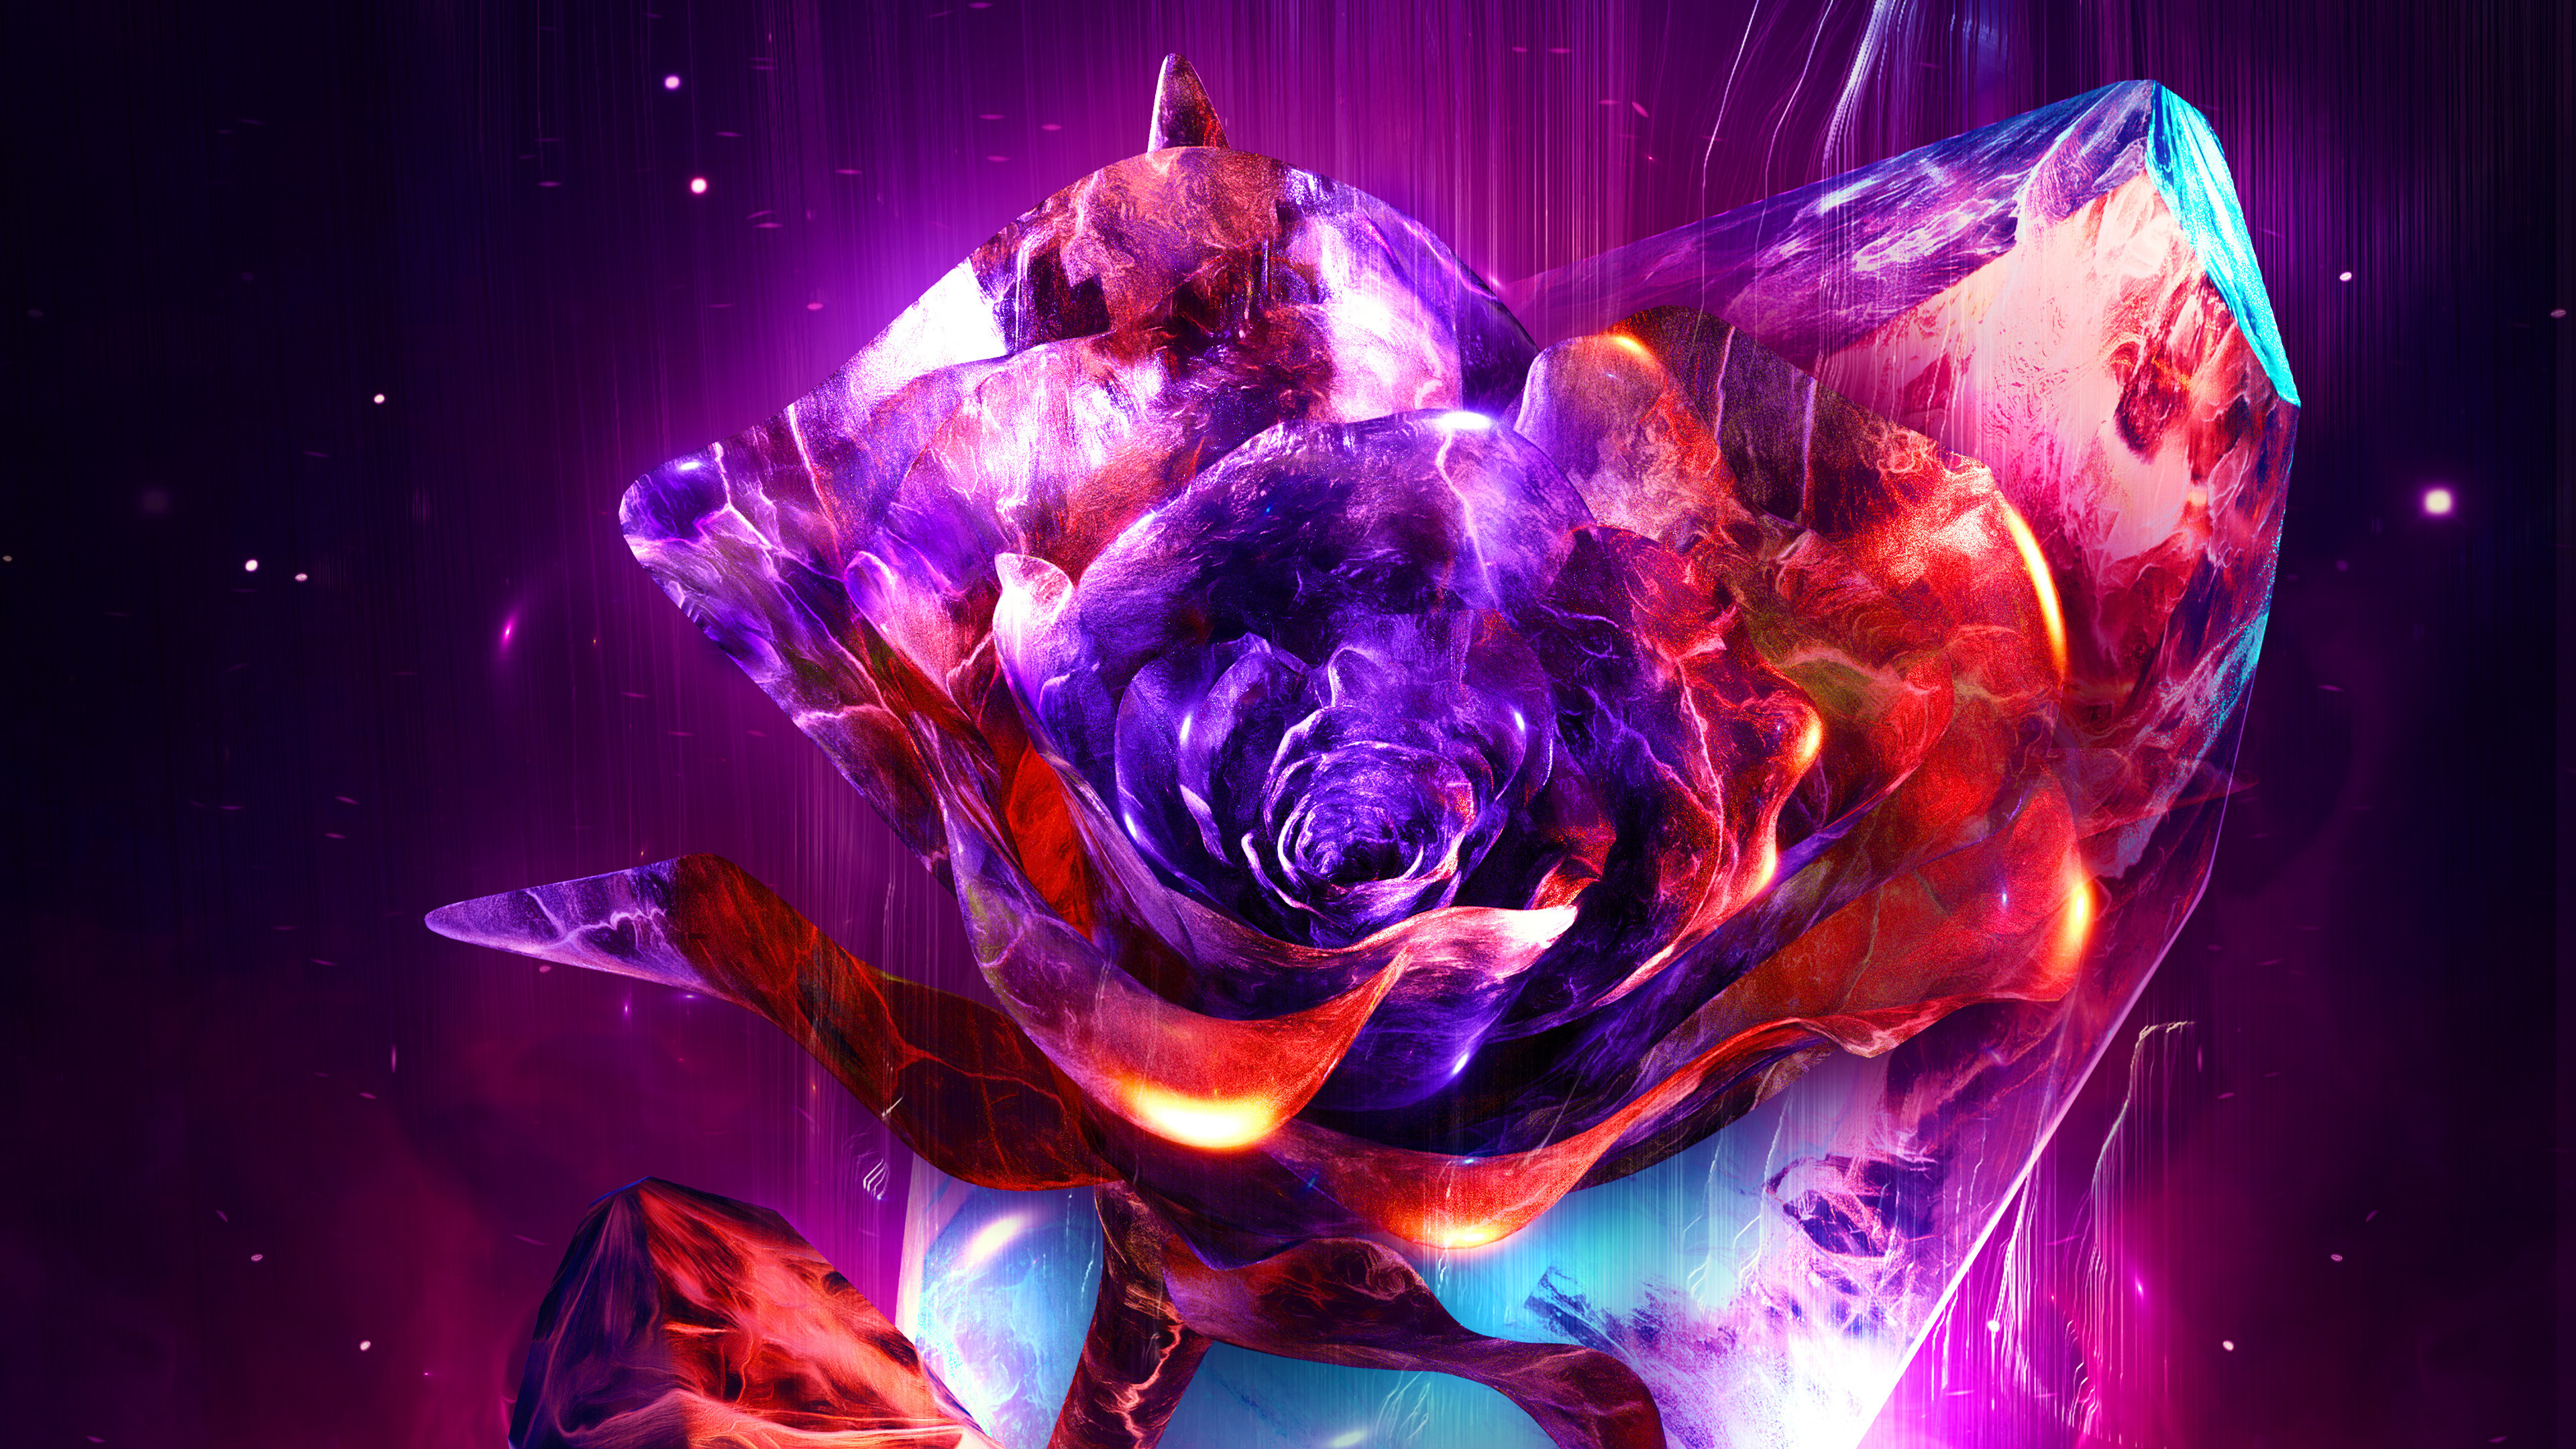 3840x2160 Rose Abstract 4k 4k HD 4k Wallpapers, Images